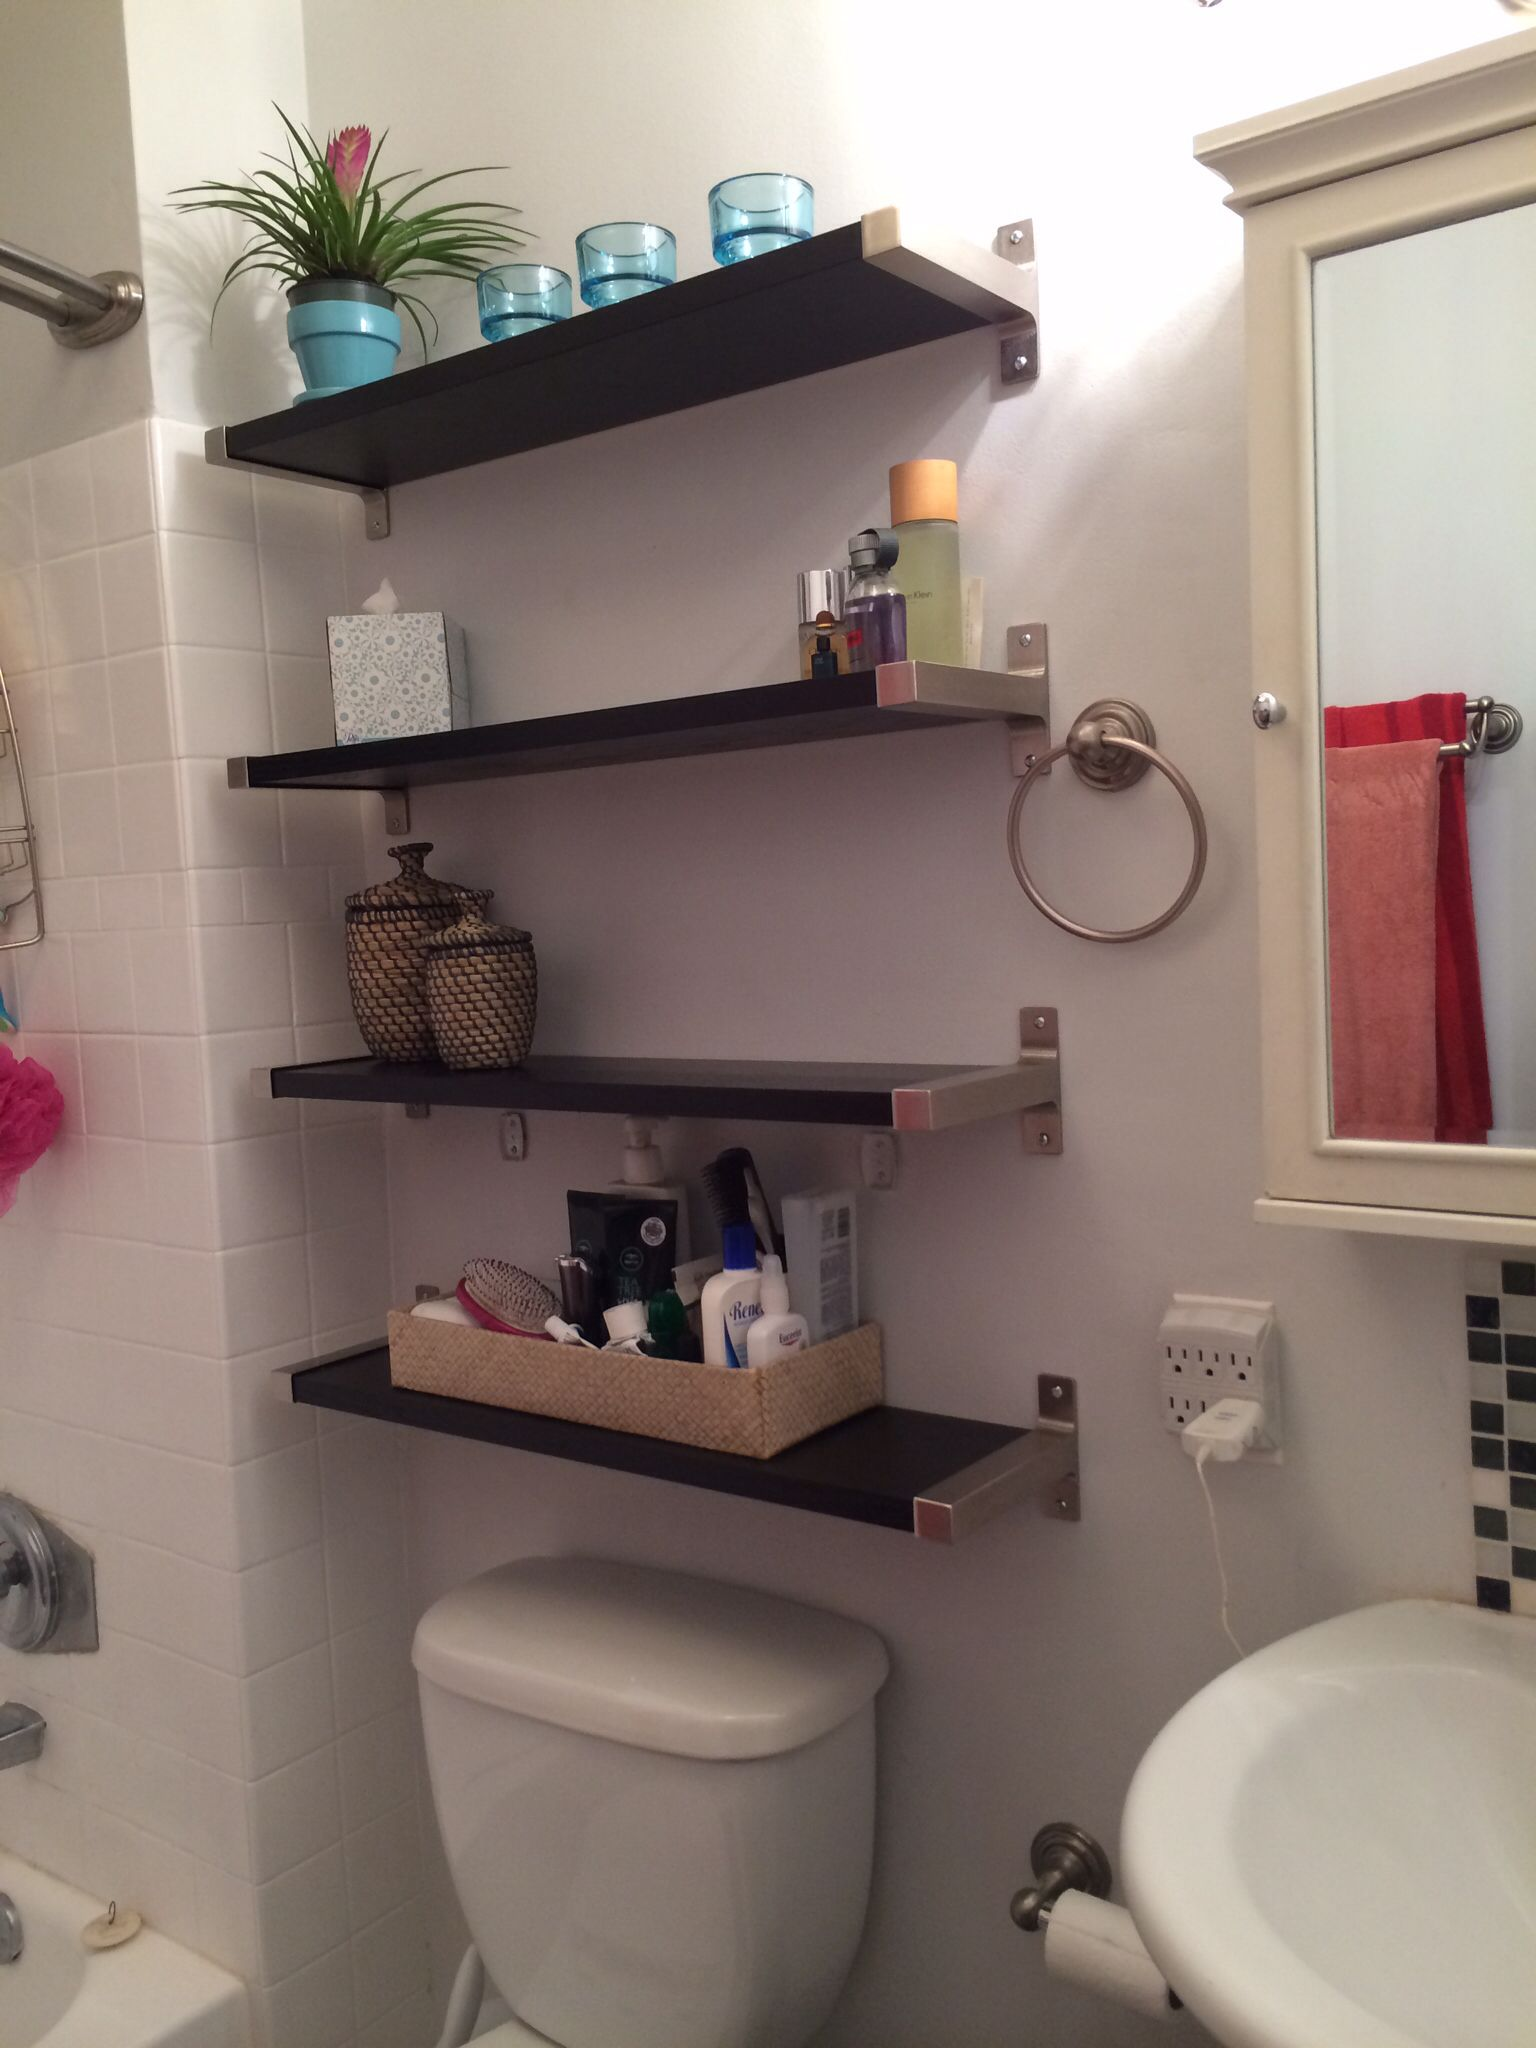 small bathroom solutions ikea shelves bathroom pinterest salle de bain deco salle de. Black Bedroom Furniture Sets. Home Design Ideas